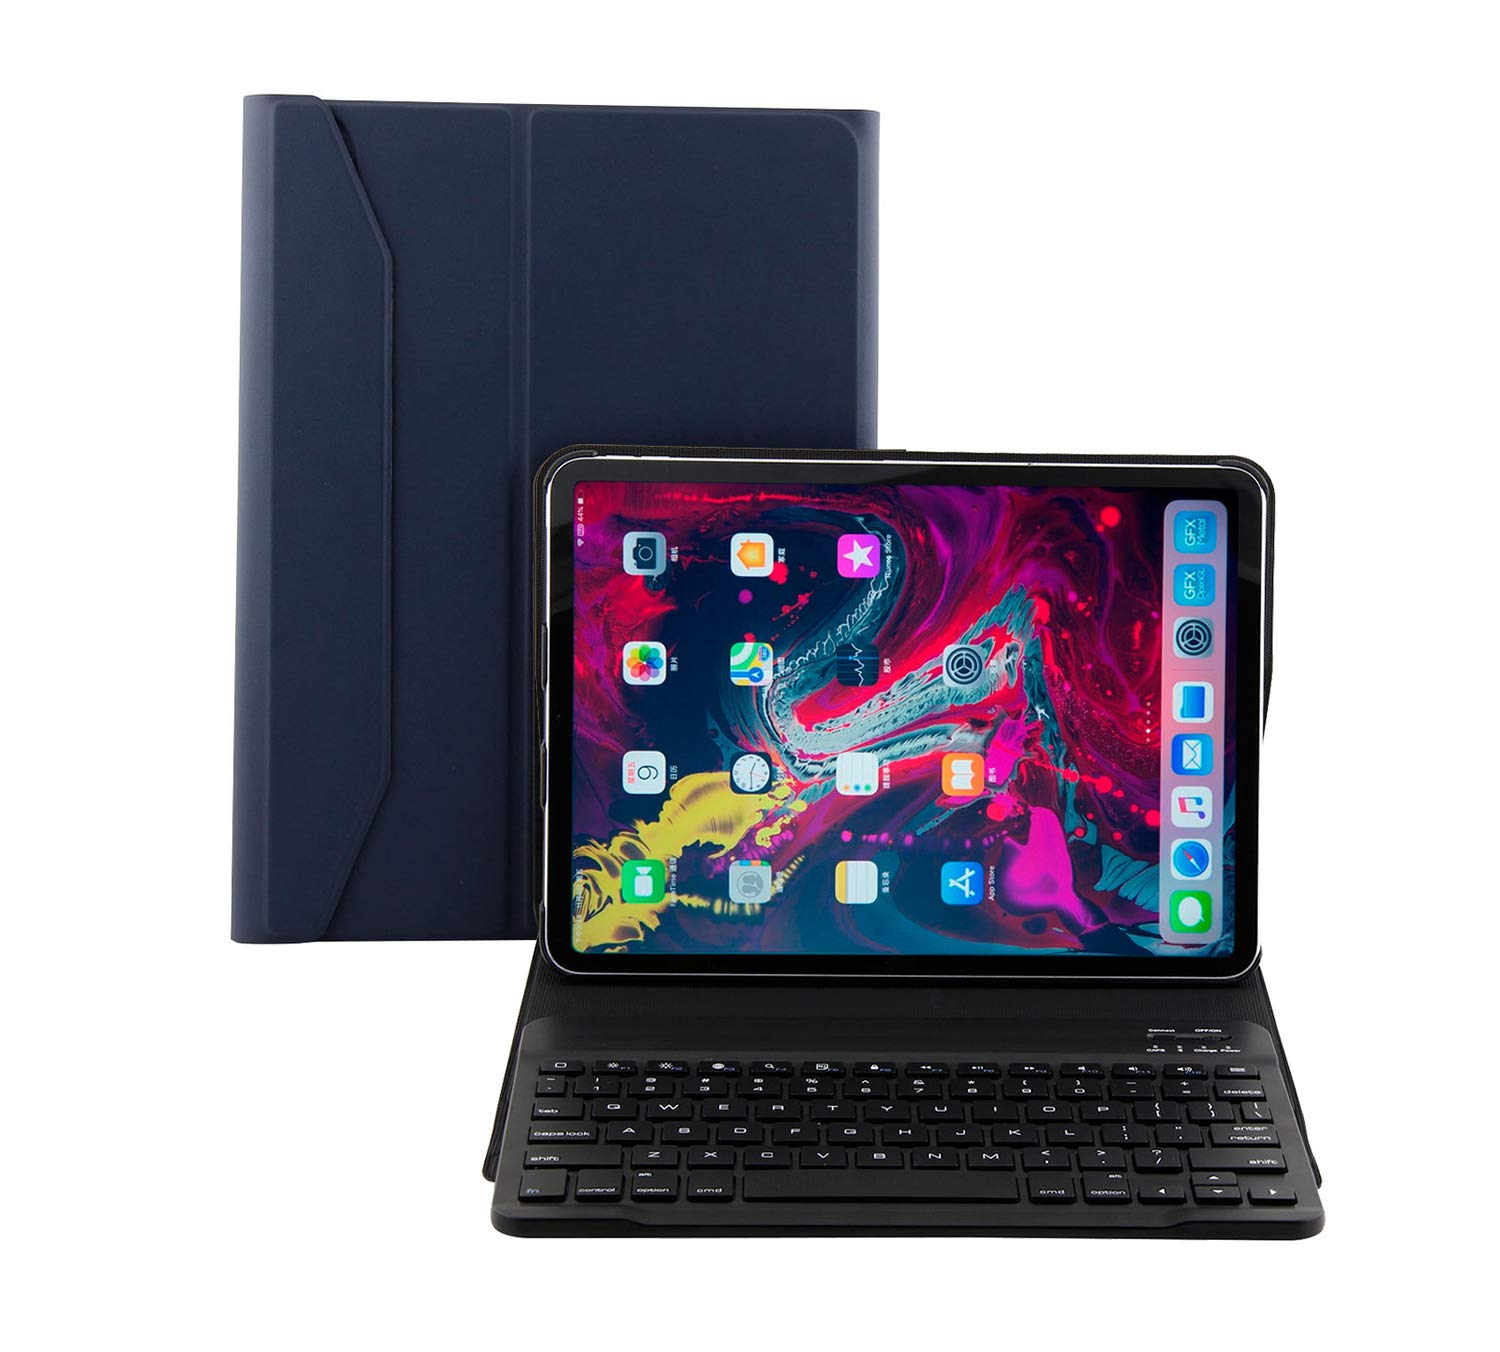 RLTech iPad Pro 11 2018 Keyboard Leather Case, Ultra Slim Flip with Removable Wireless Keyboard Stand Case Cover for Apple iPad Pro 11-inch 2018 Release Tablet (Blue)